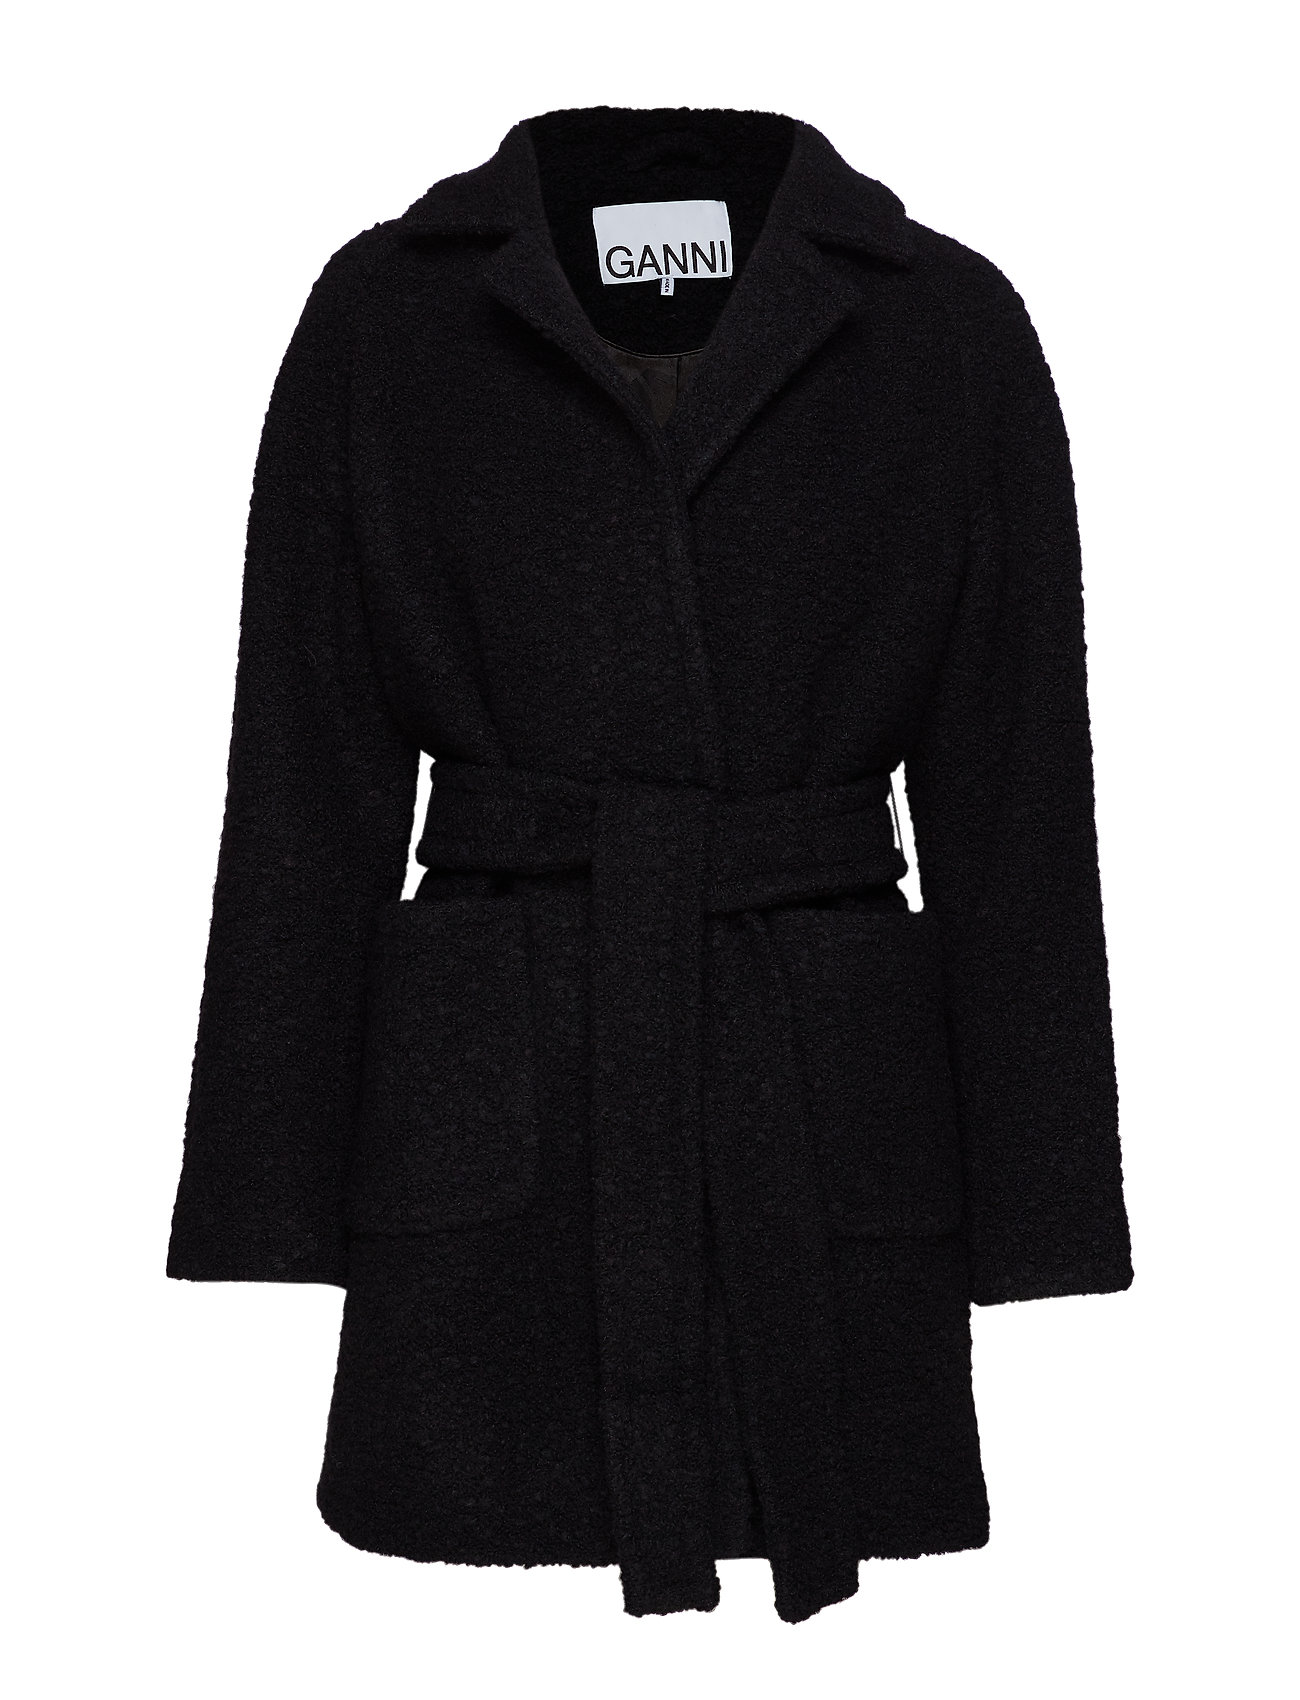 Ganni Boucle Wool Wrap Coat - BLACK